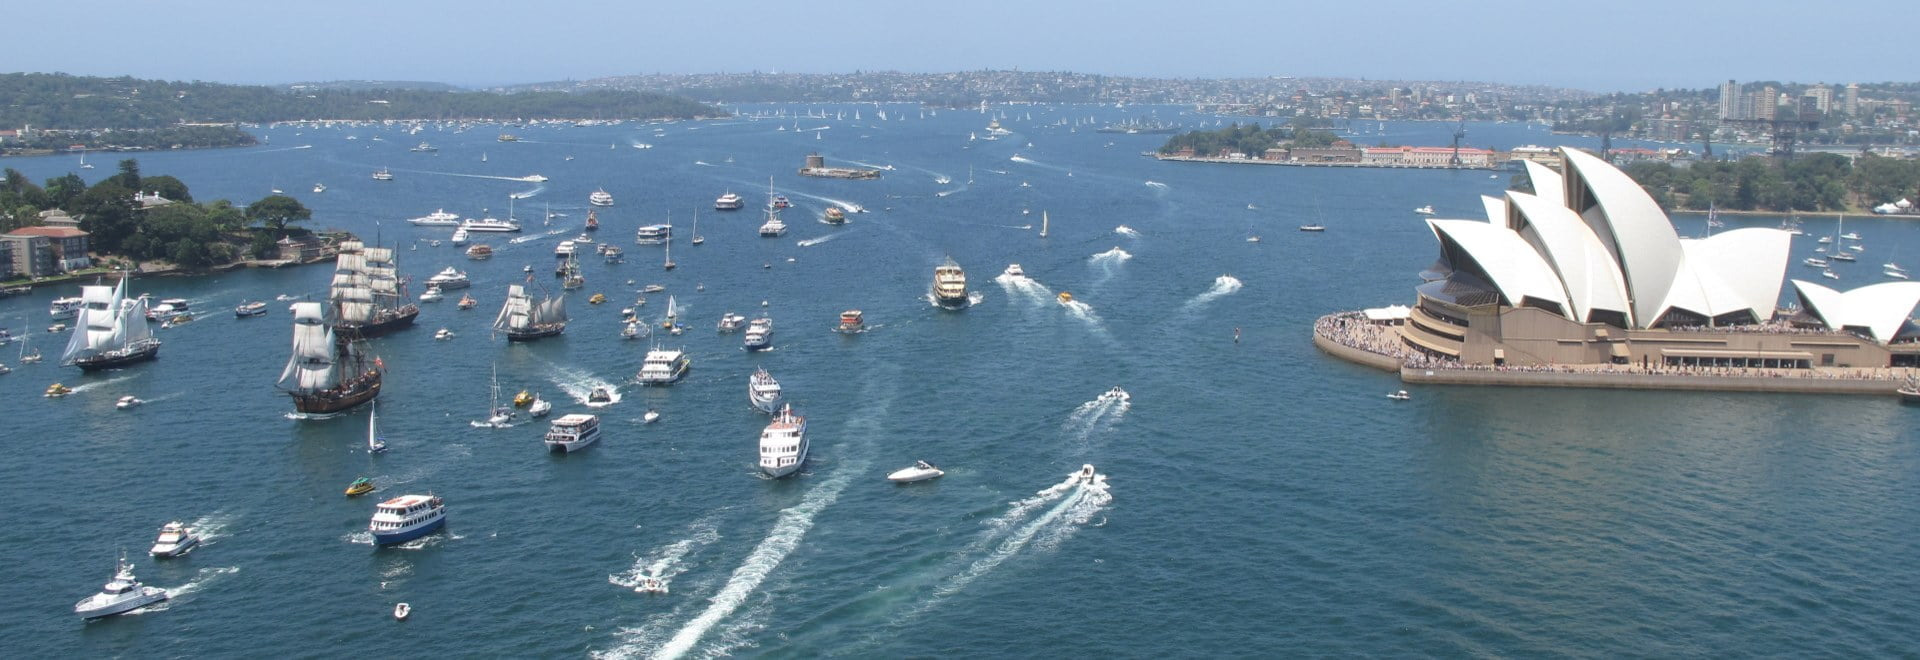 Australia Day Tall Ships Cruises